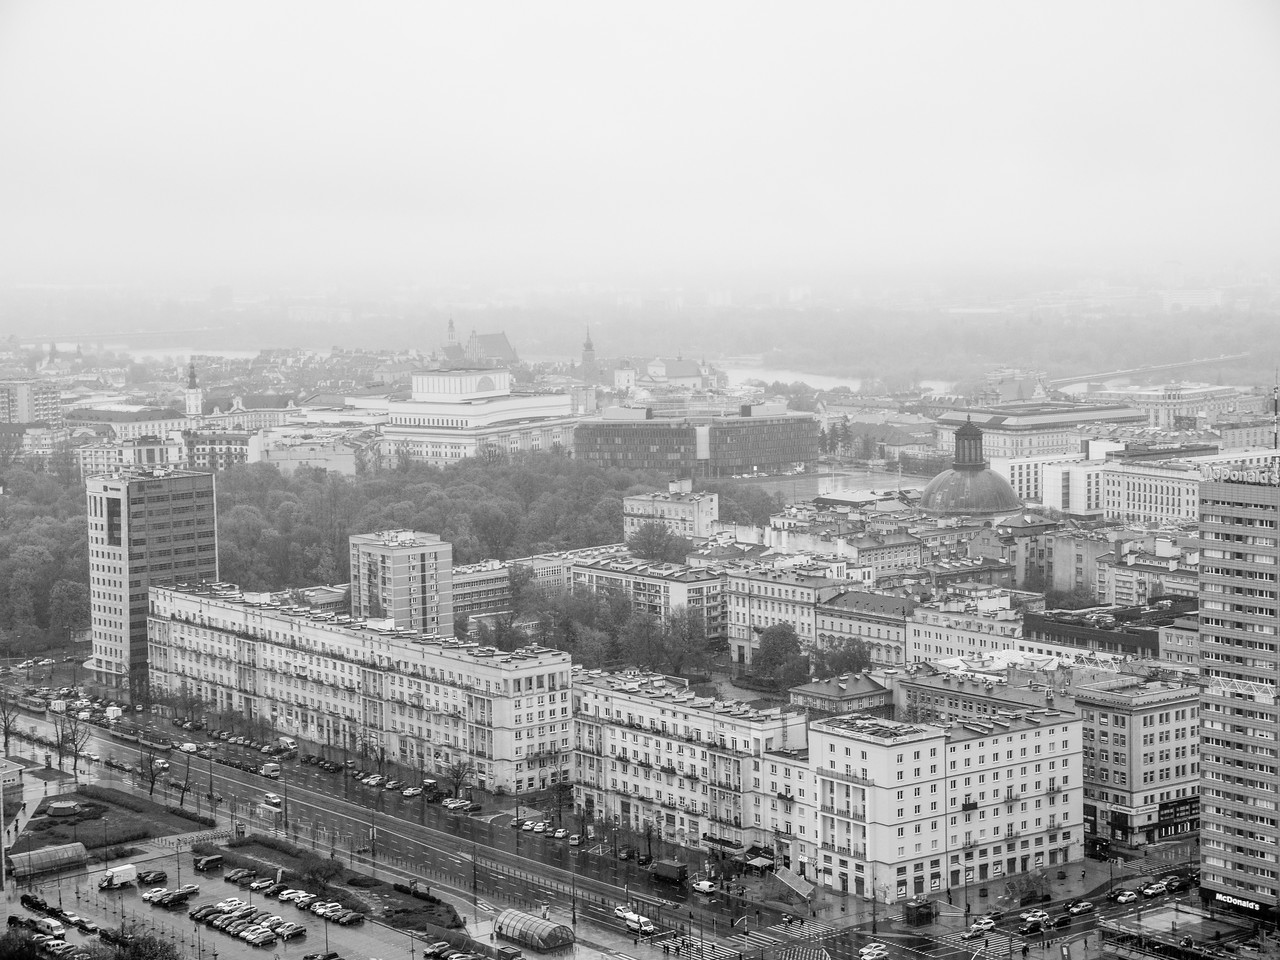 Warsaw From Communism to Capitalism